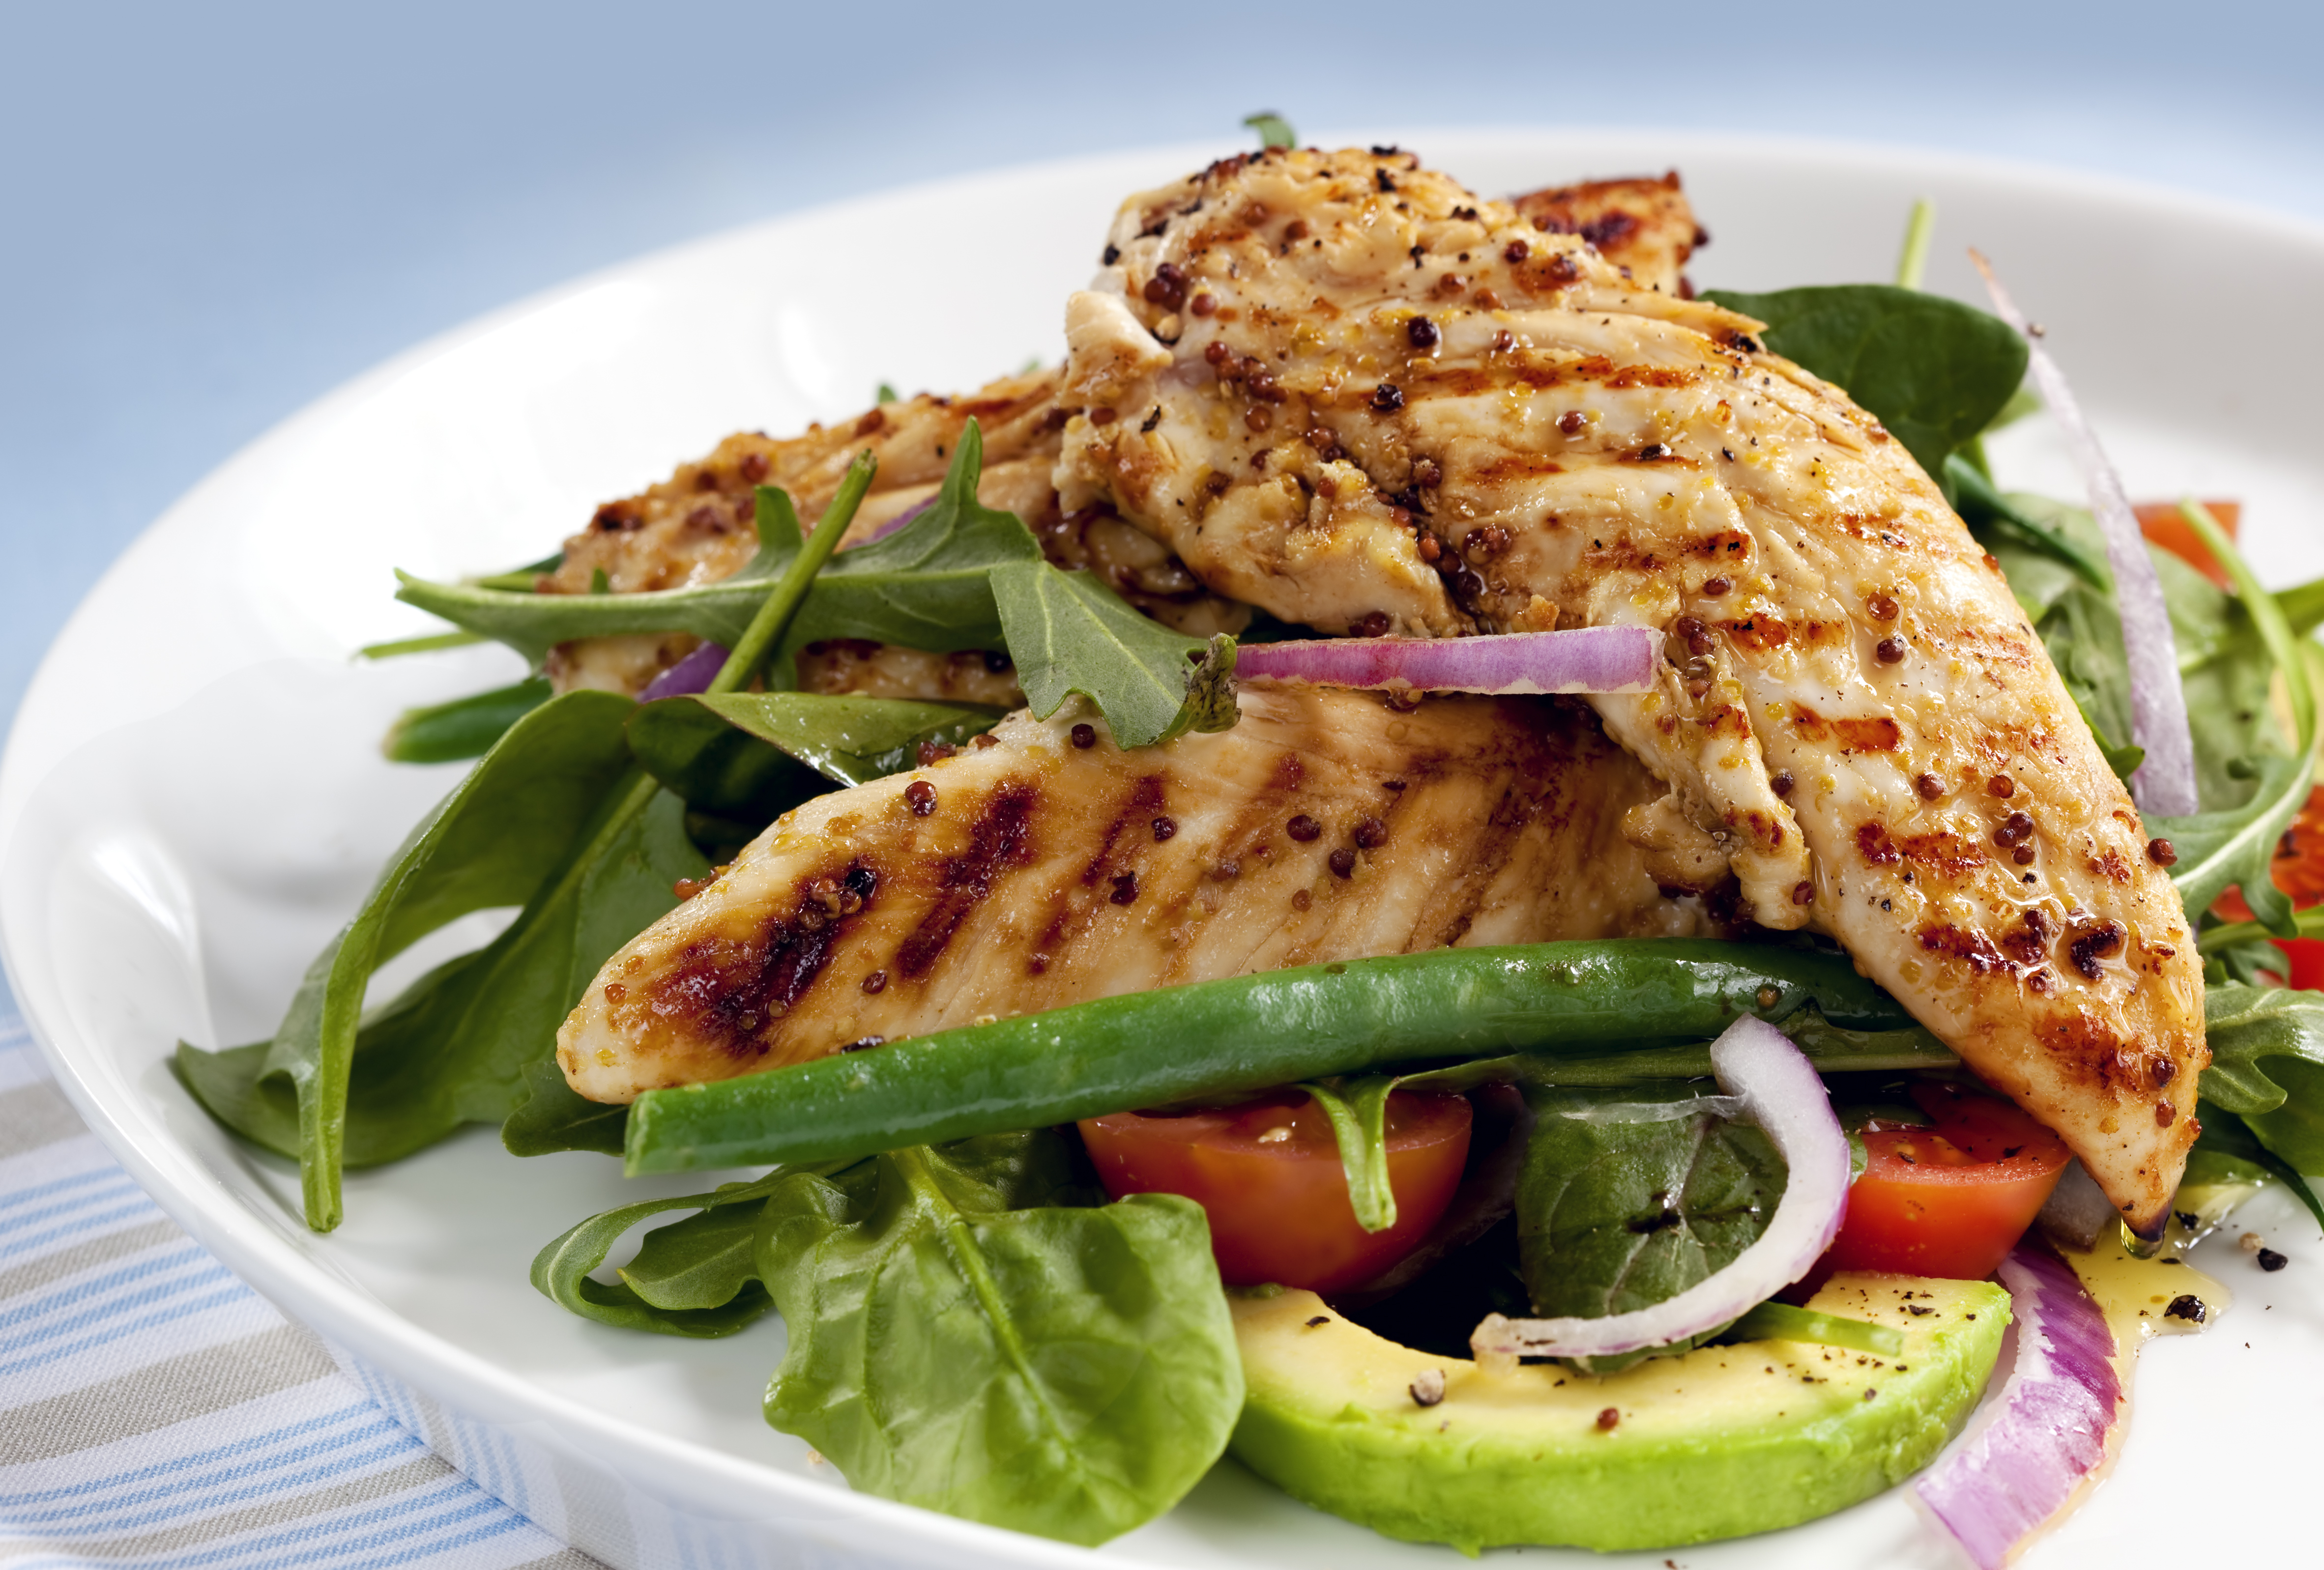 Healthy eating in the usa the international student blog the salad of grilled chicken tenderloins with avocado tomatoes red onion green beans forumfinder Choice Image